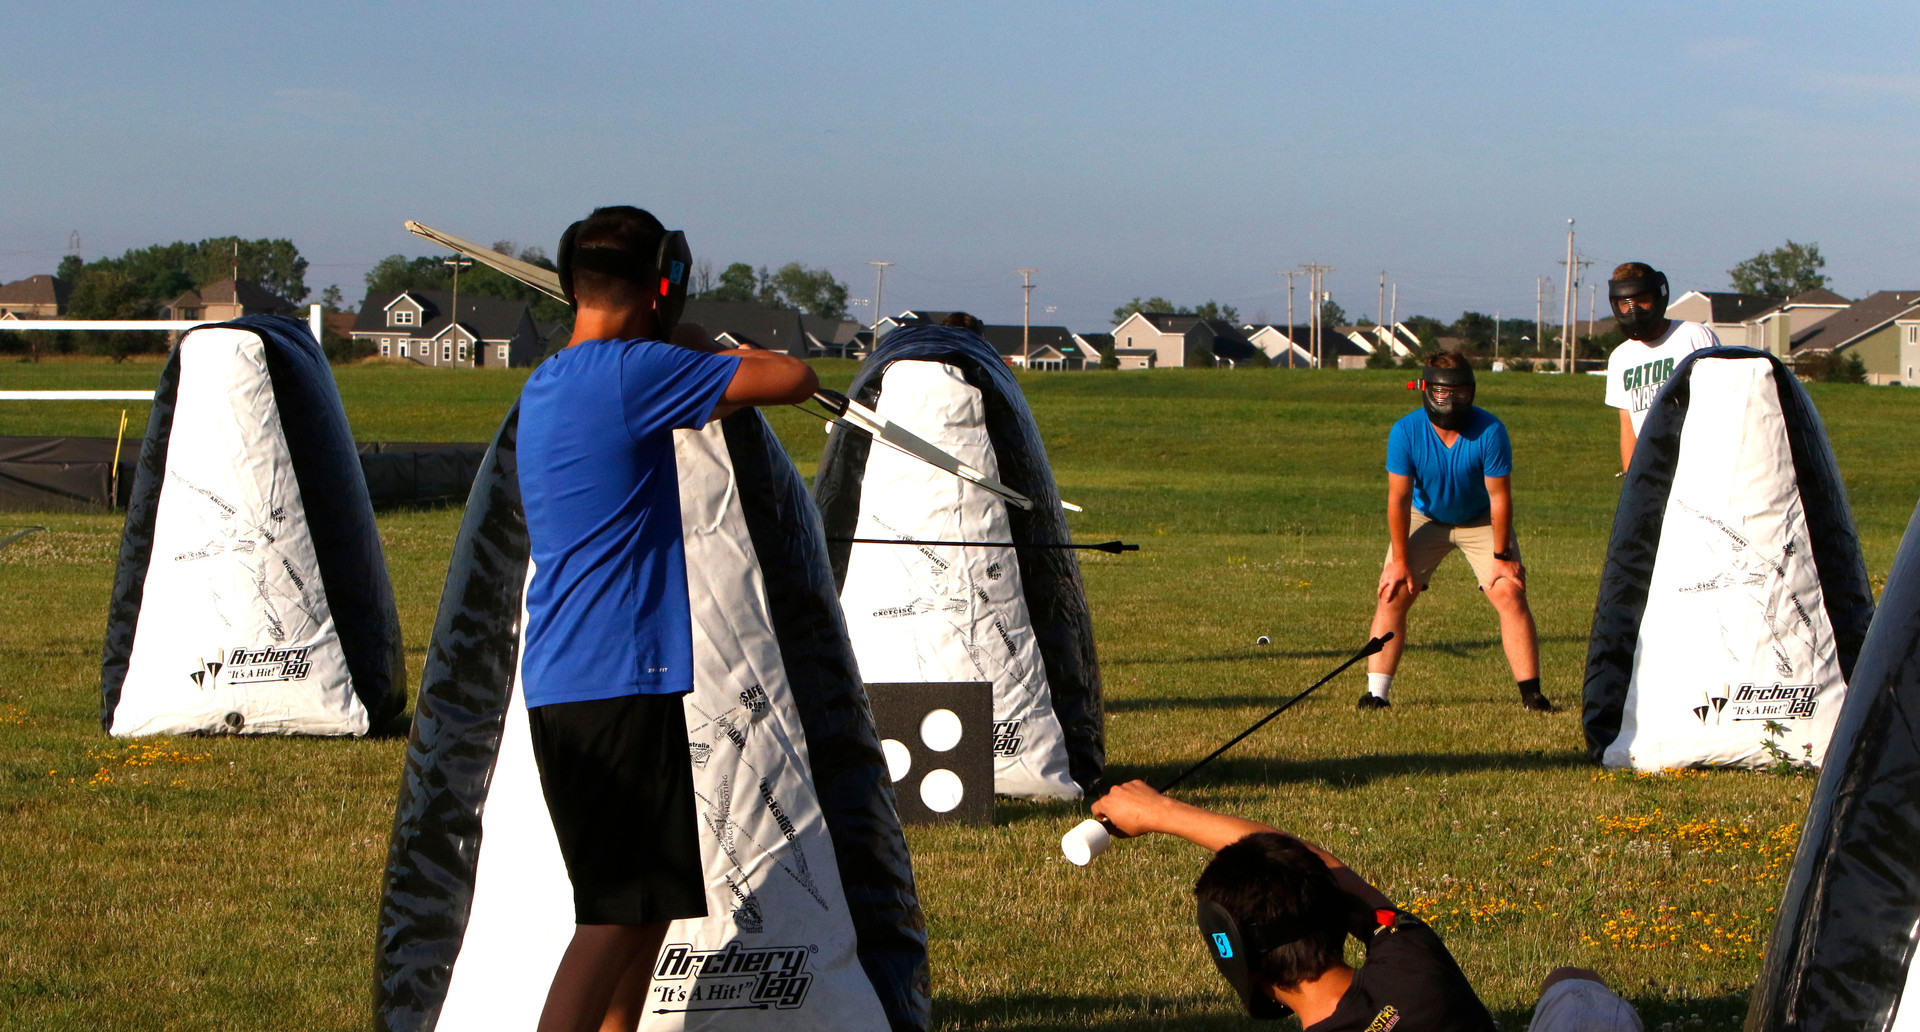 Archery_Tag_Outdoor_Inflatable_007.JPG